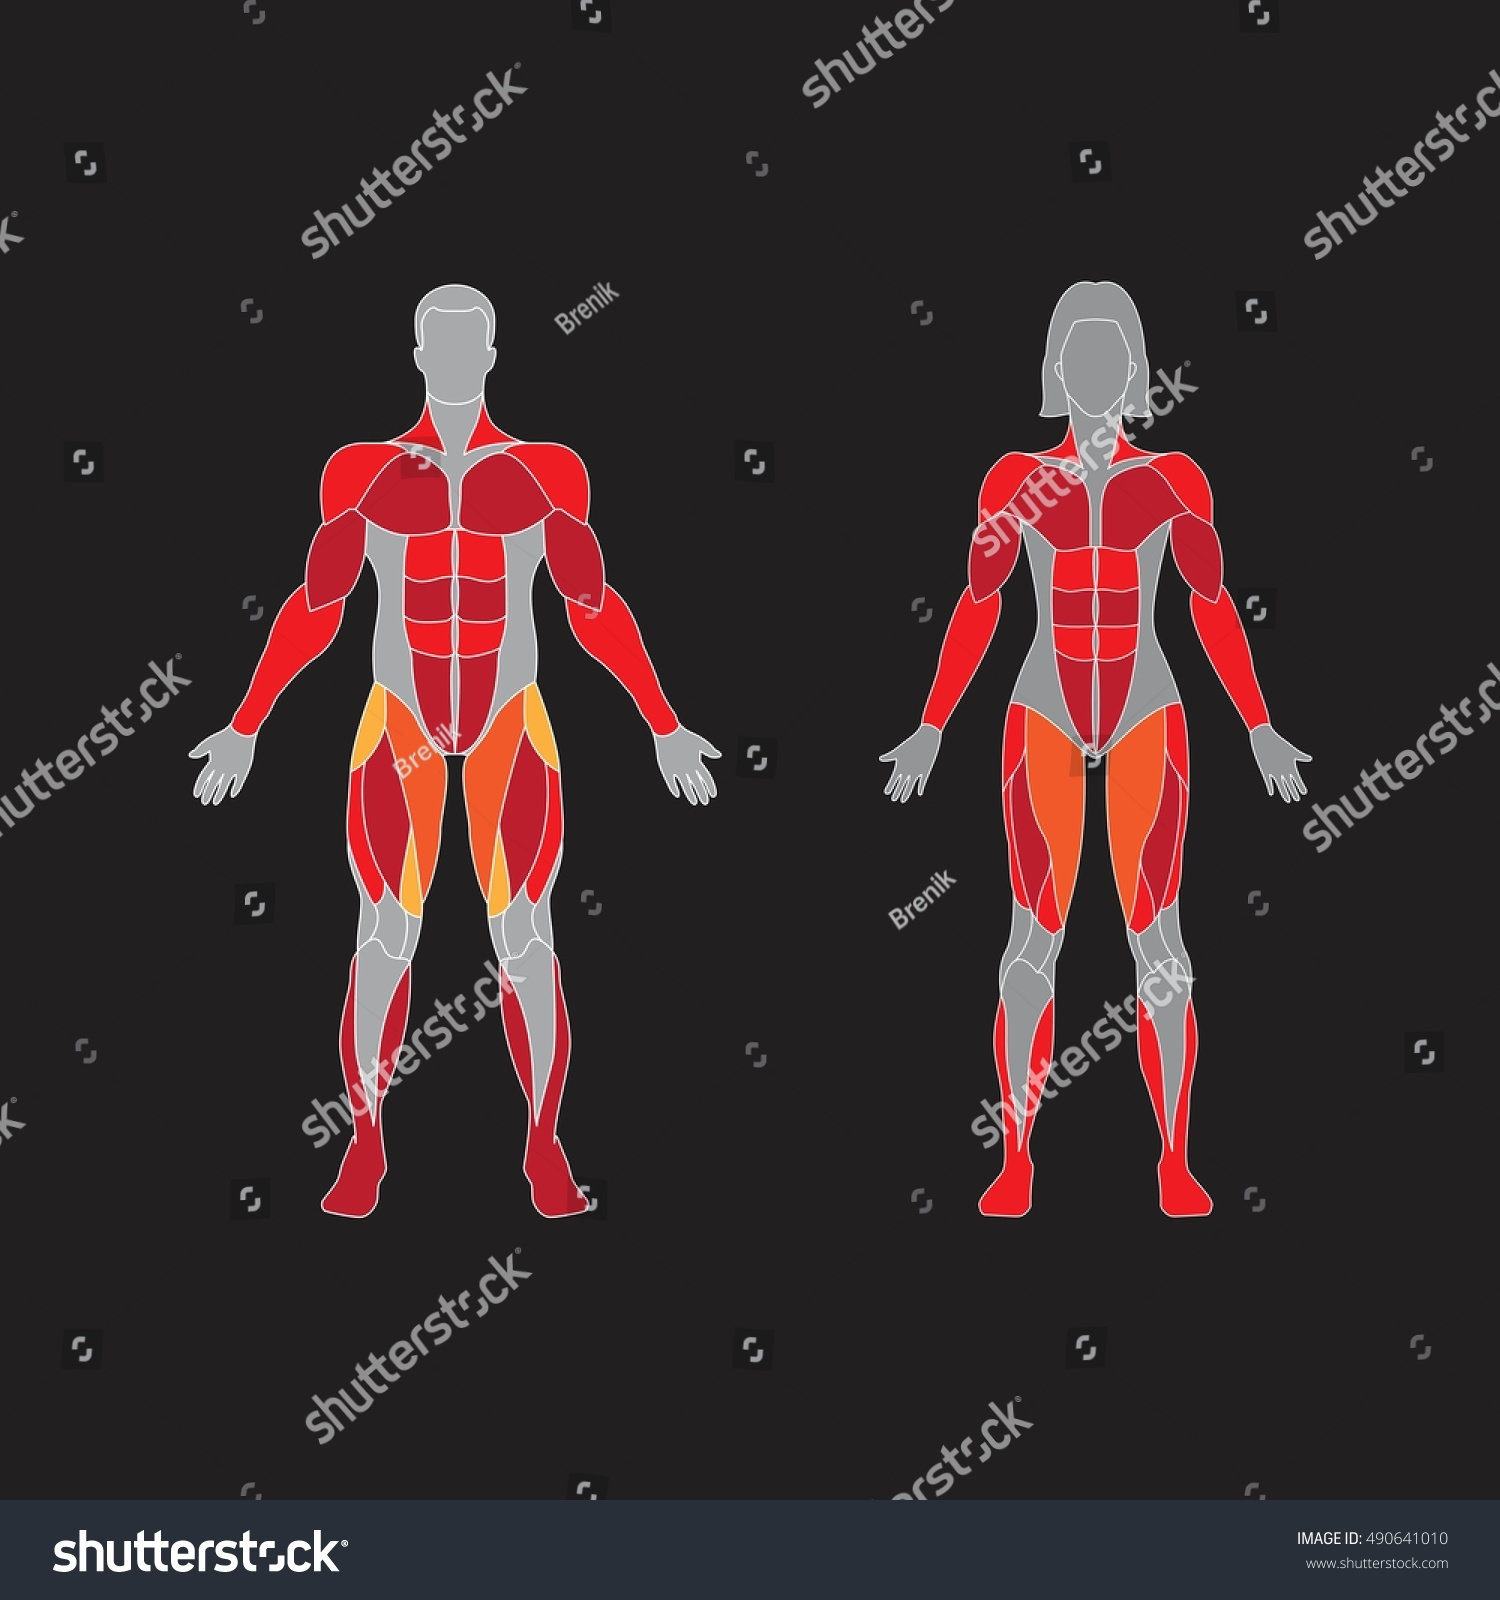 Muscular System On Black Background Human Stock Vector Royalty Free